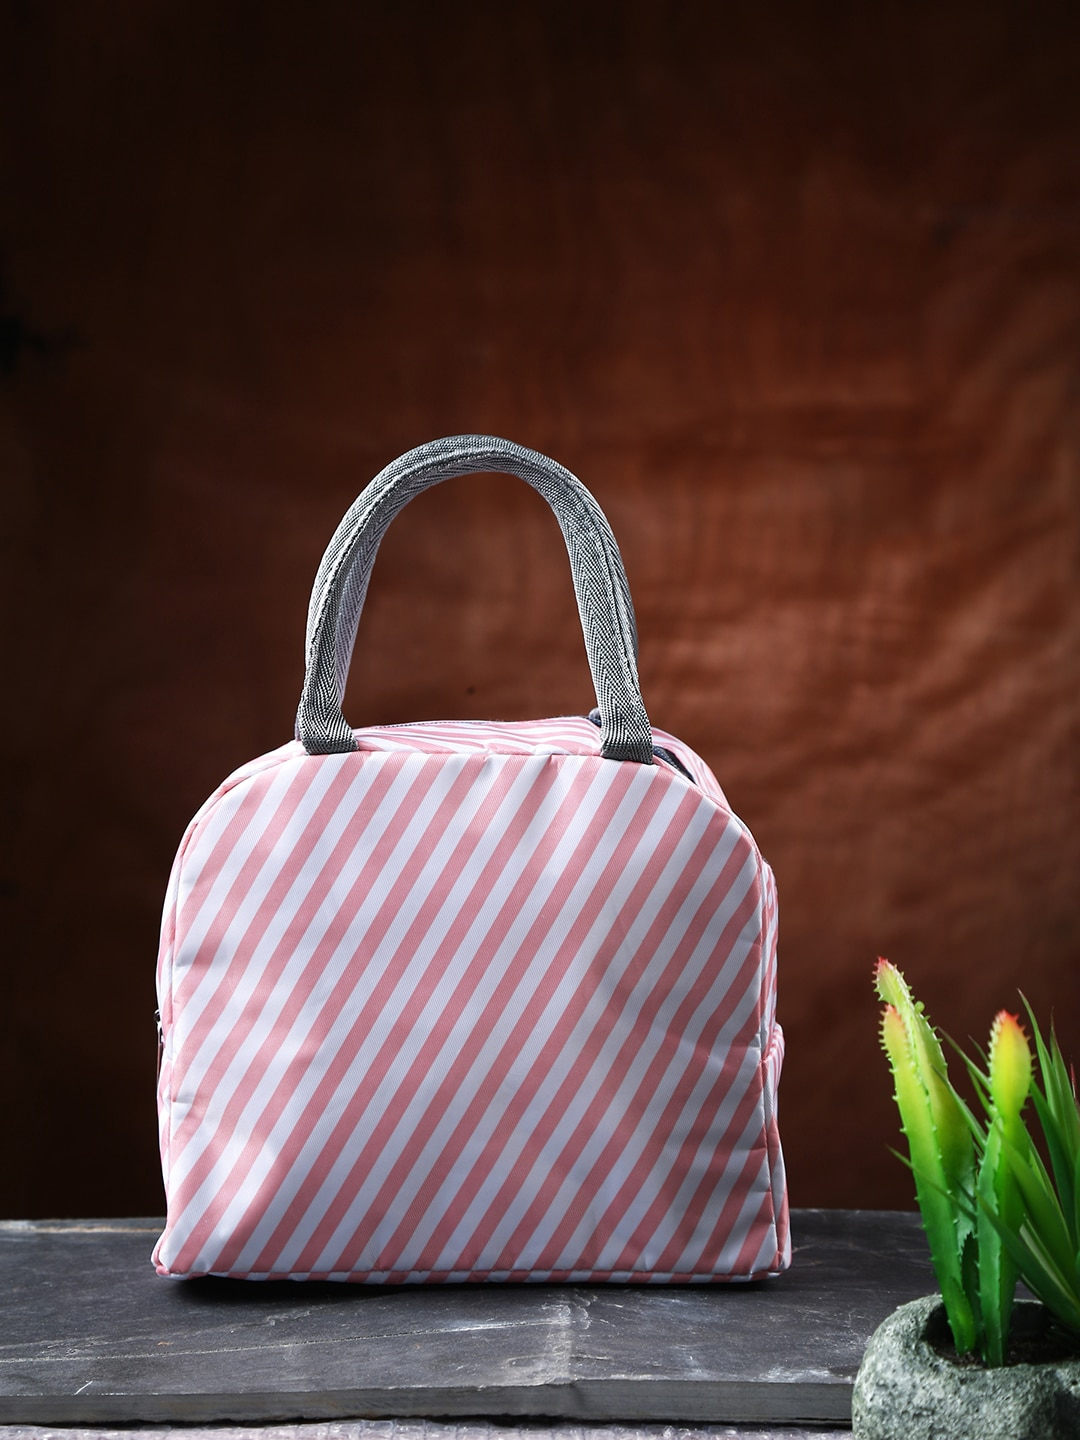 Dennmarks Pink   White Striped Thermal Insulated Leather Lunch Bag